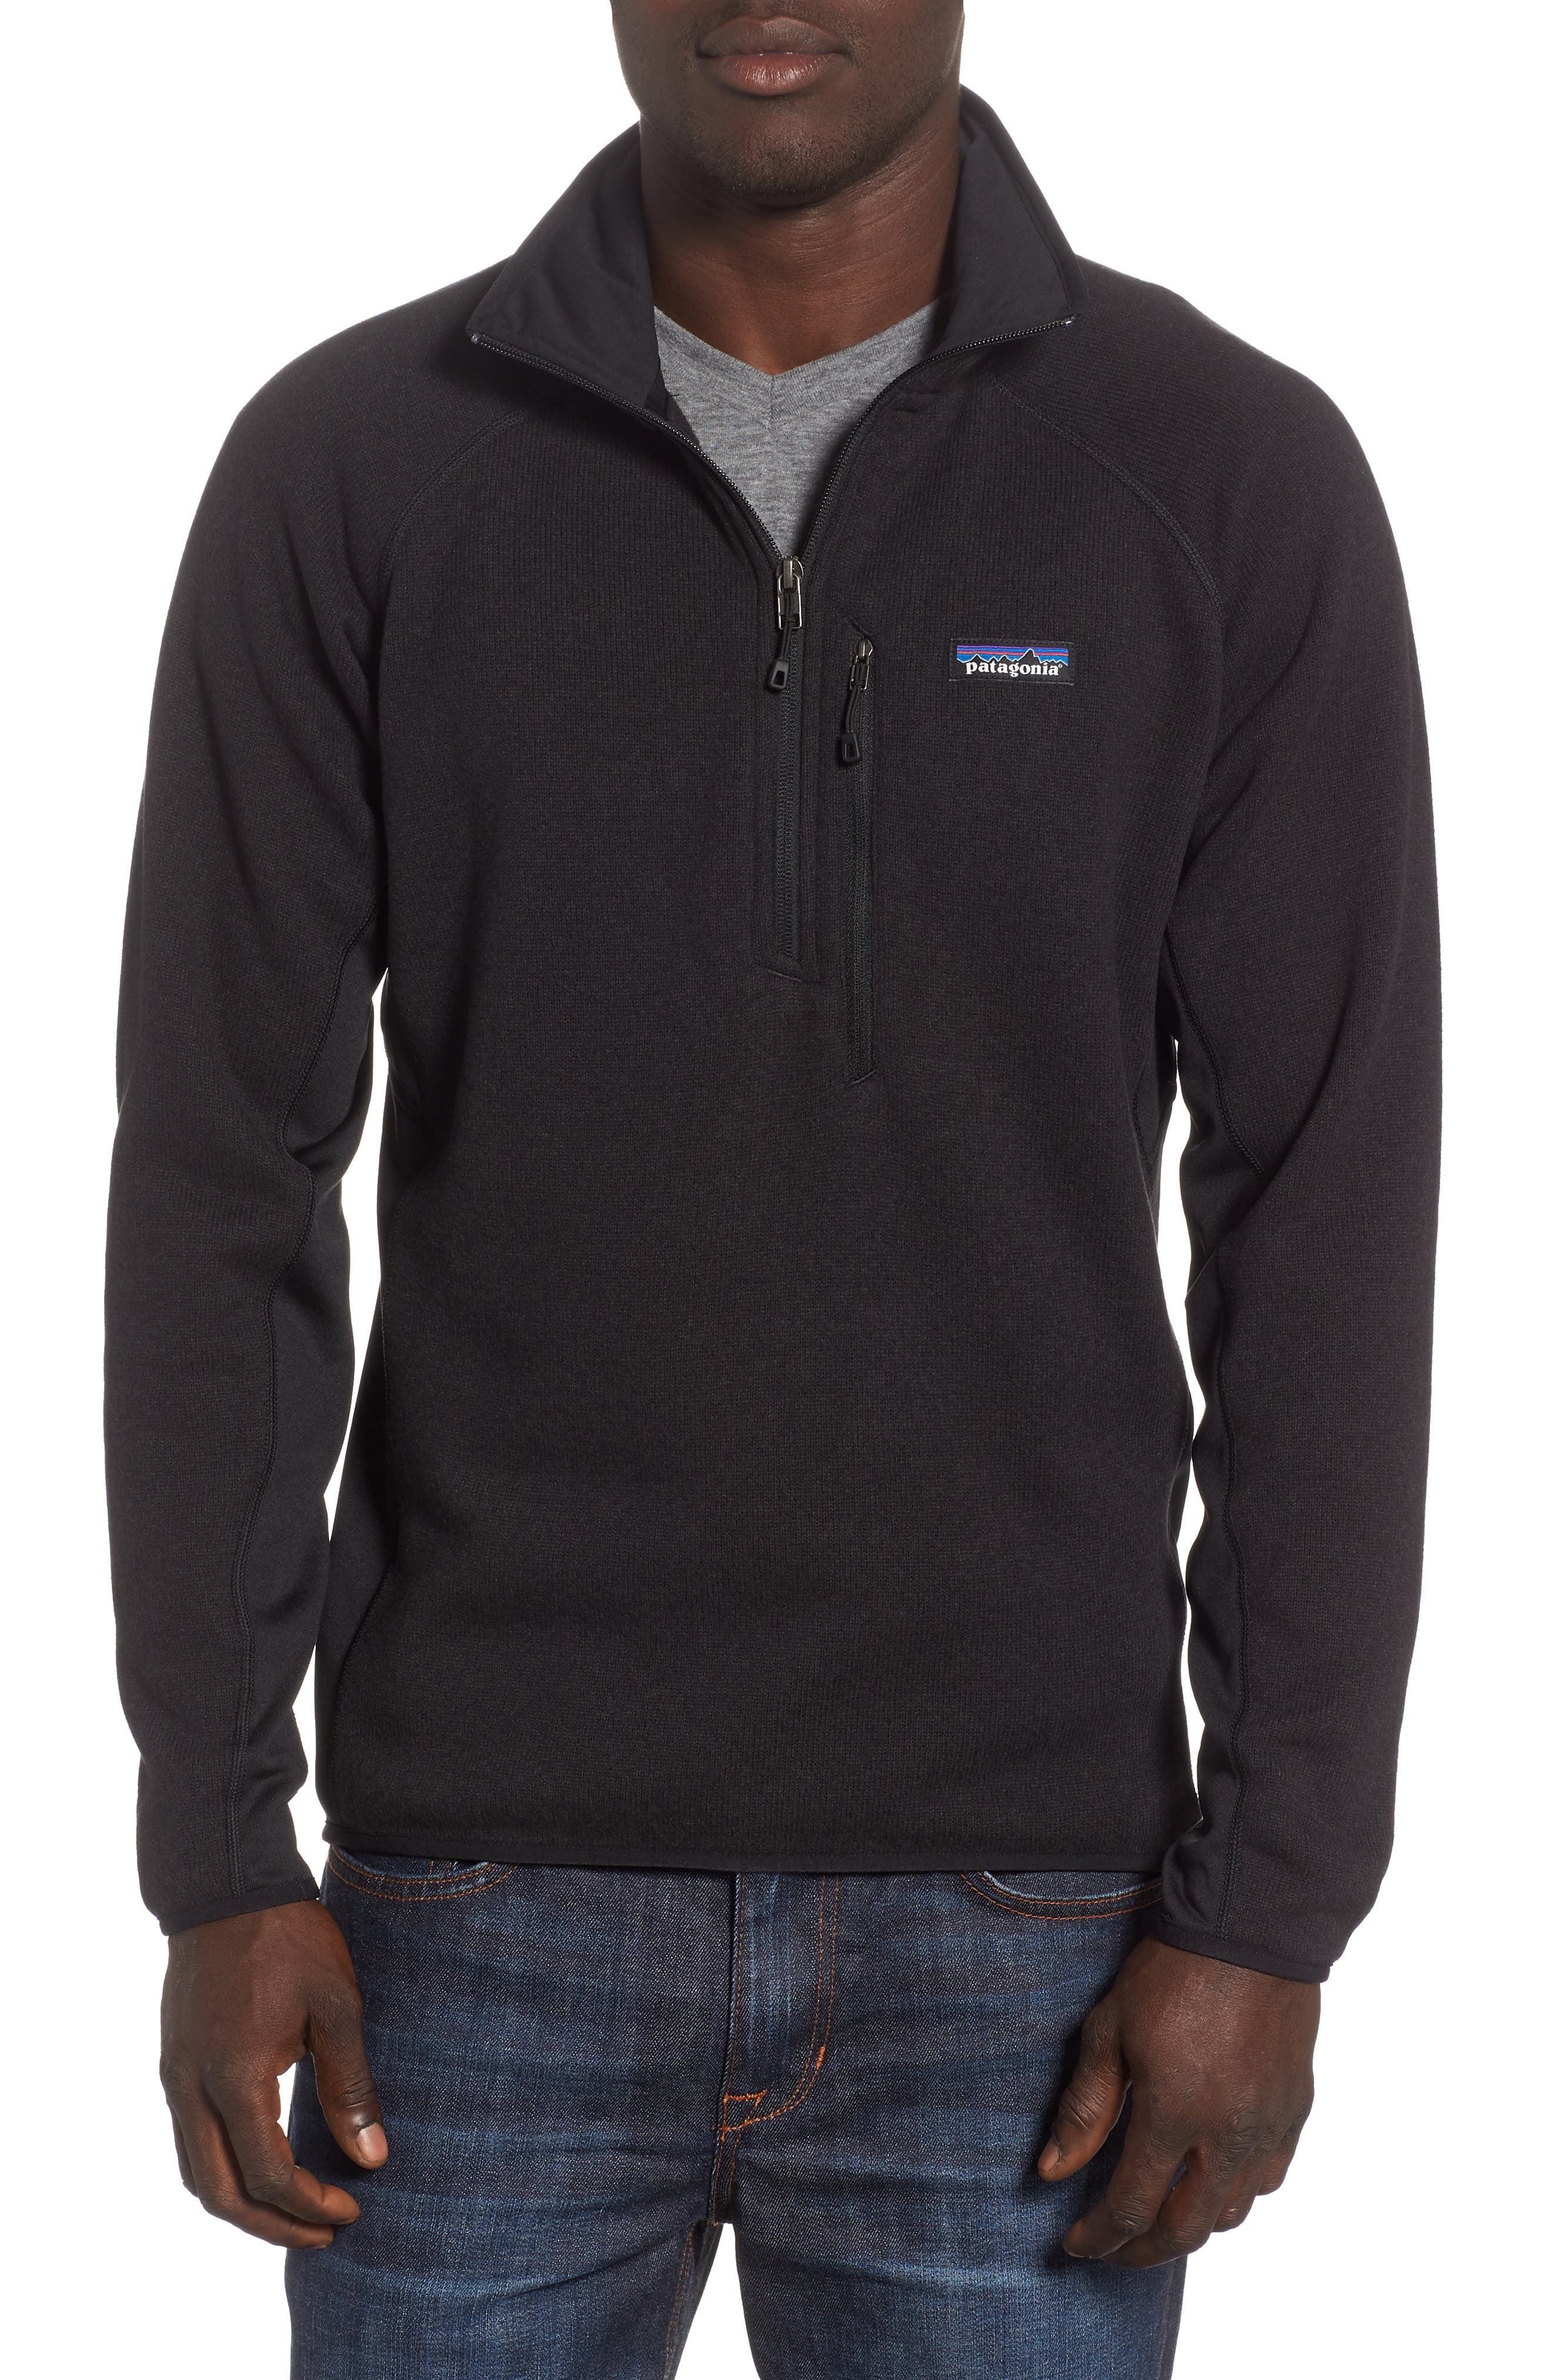 Better Sweater<sup>®</sup> Performance Slim Quarter-Zip Pullover,                             Main thumbnail 1, color,                             BLACK